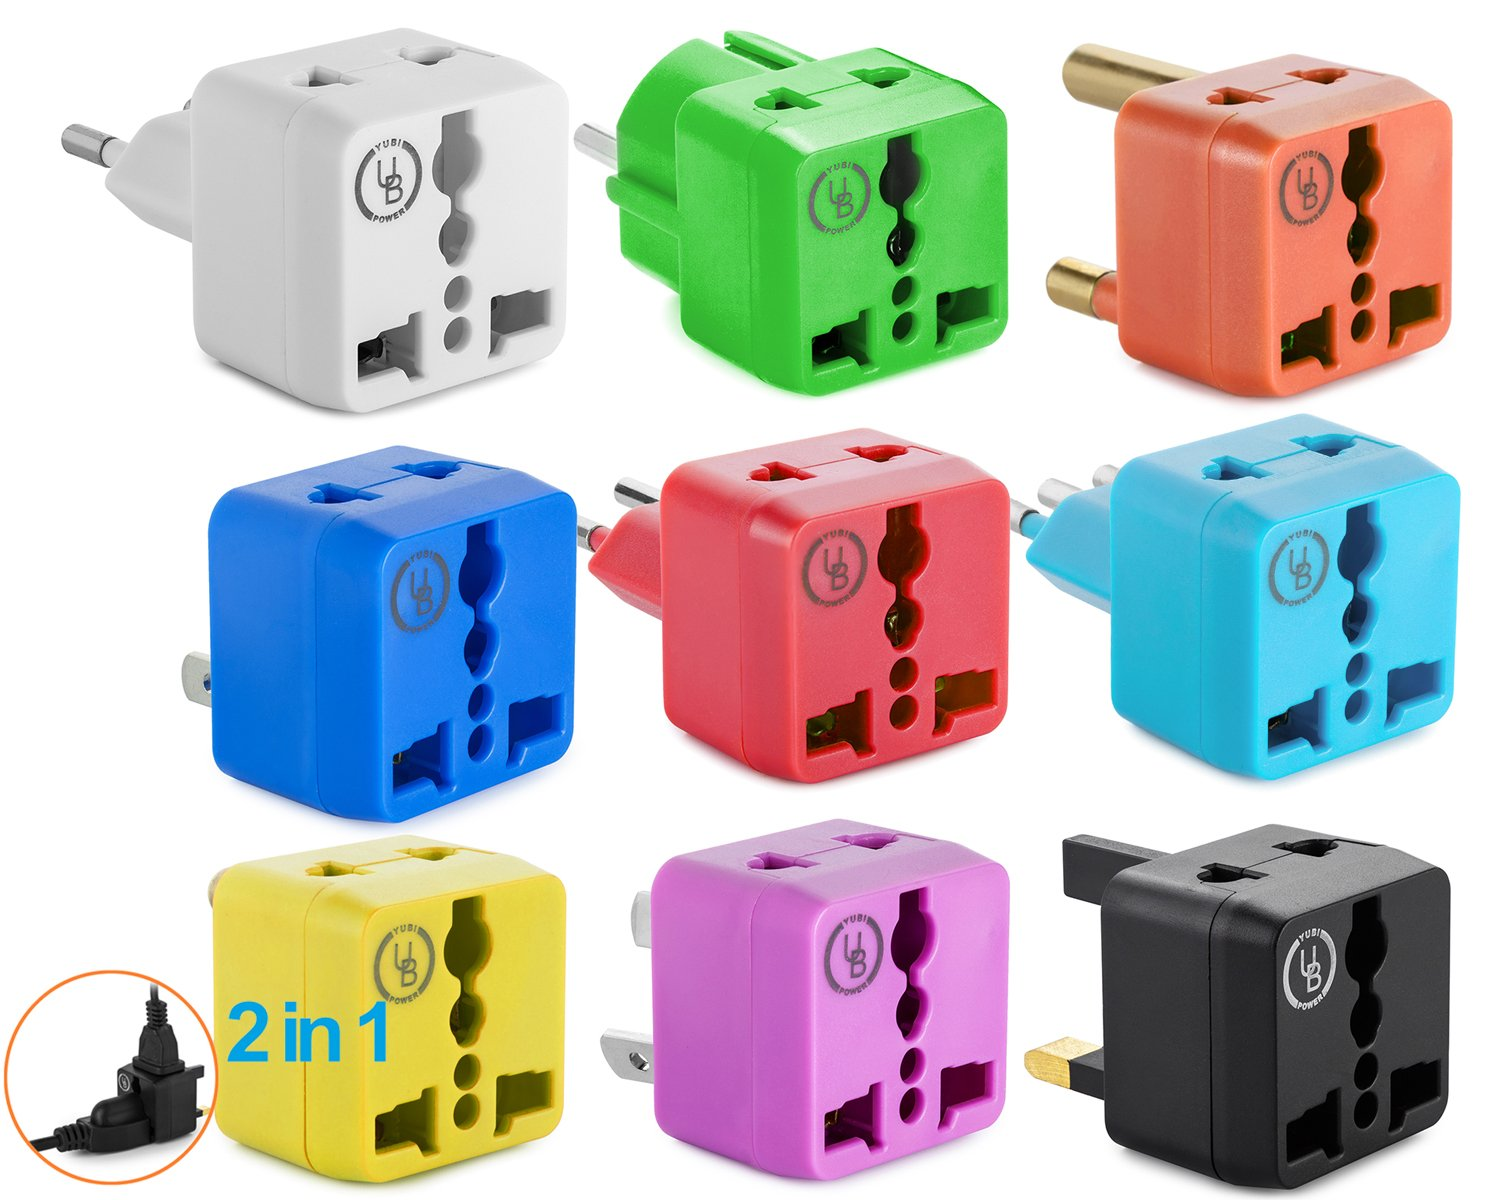 Yubi Power 2 in 1 Universal Travel Adapter with 2 Universal Outlets - 9 Worldwide Plug Adapter Kit - Type G, Type C, Type A, Type D, Type E/F, Type I, Type J, Type L, Type M.